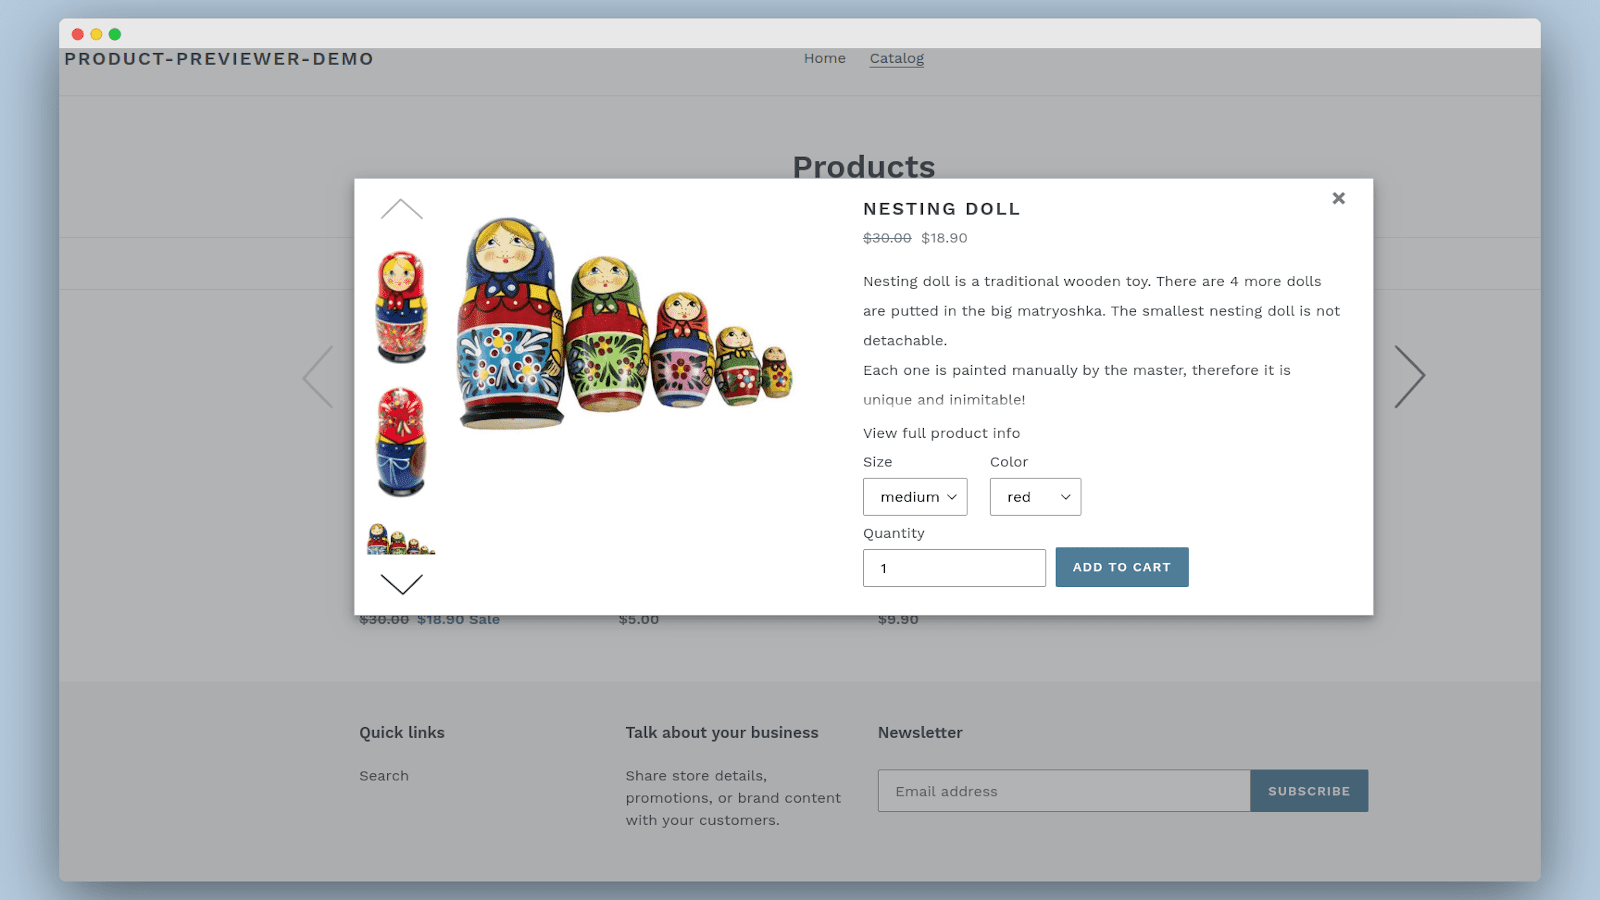 Previewer popup for product with several options